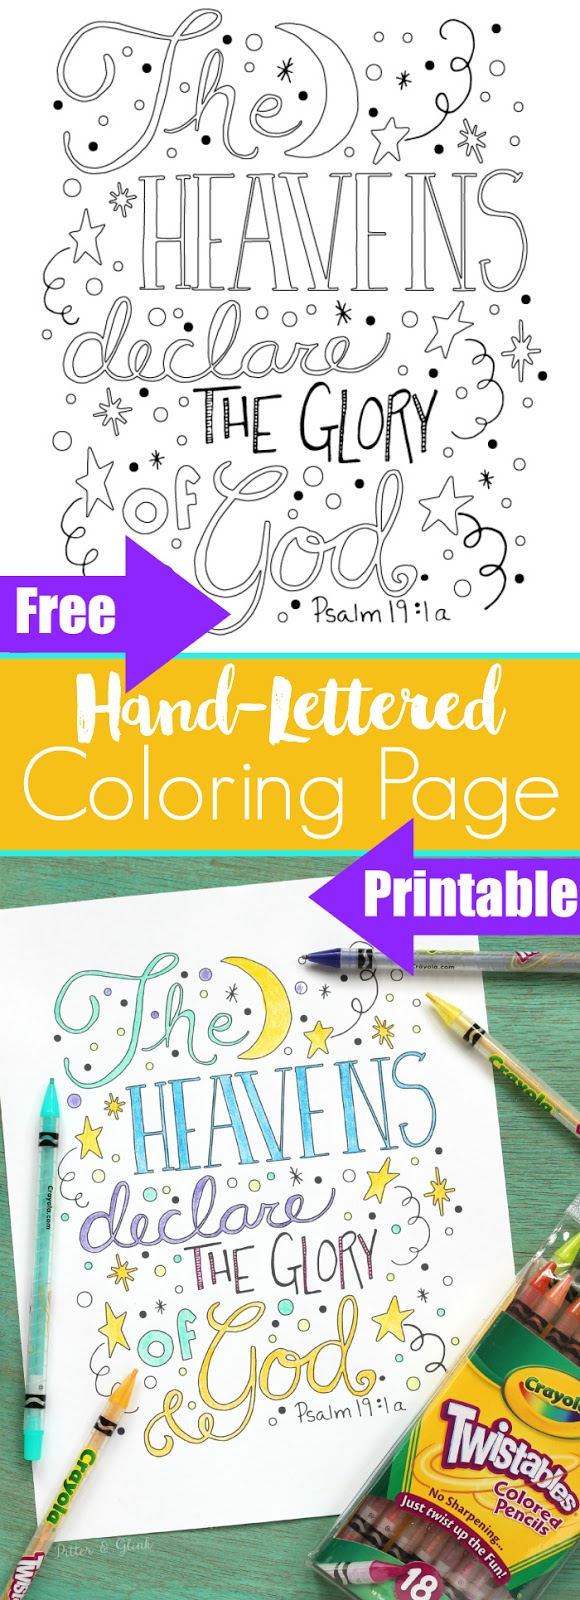 PitterAndGlink: Free Hand-Lettered Bible Verse Coloring ...